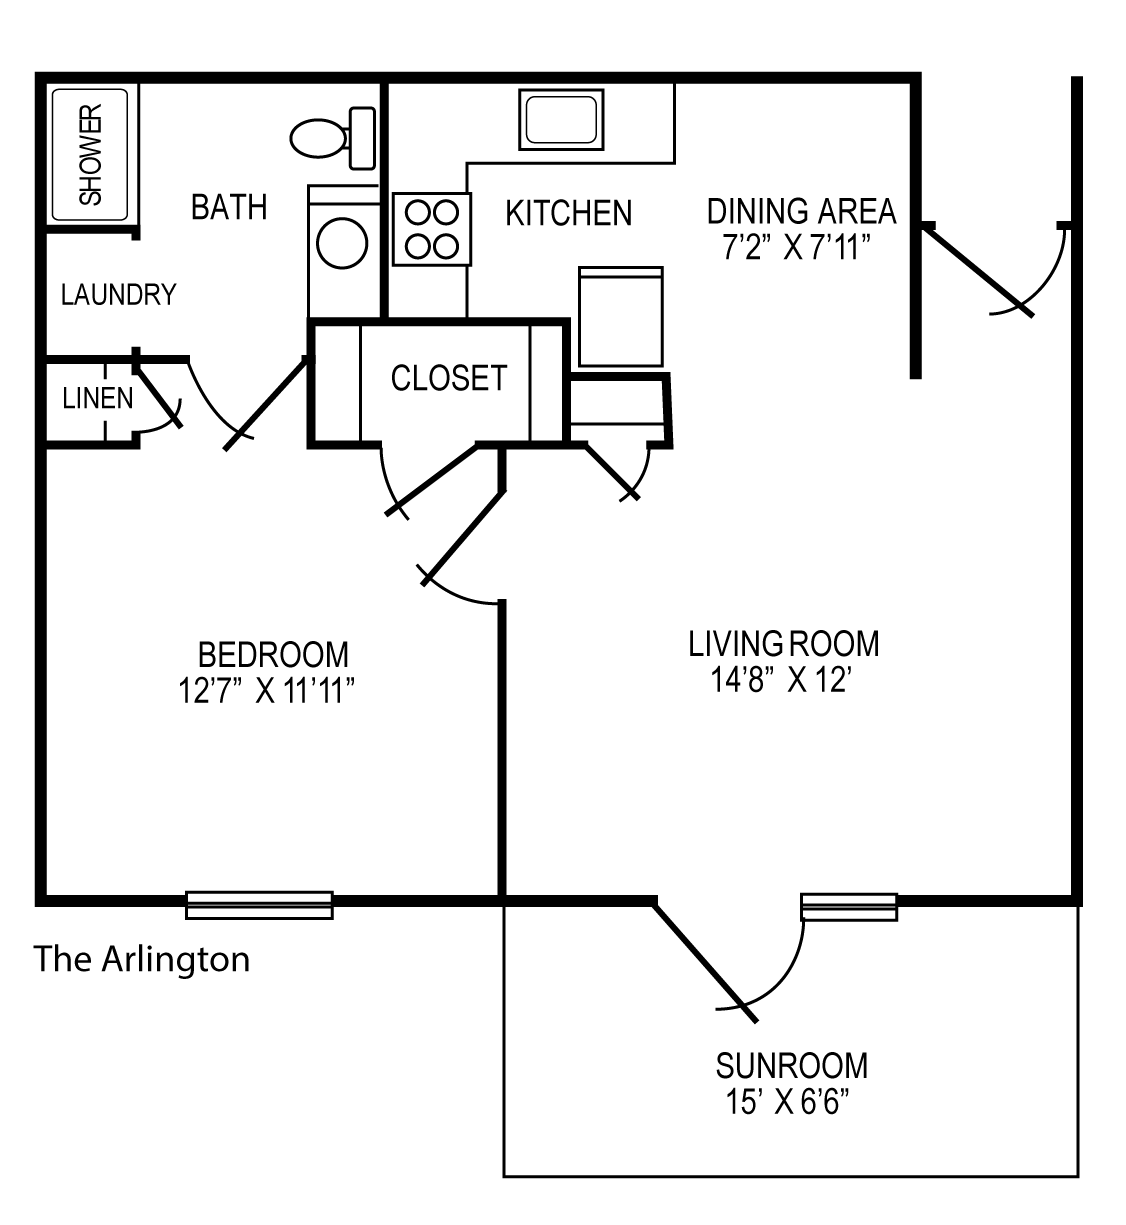 The Arlington 1 br Apartment